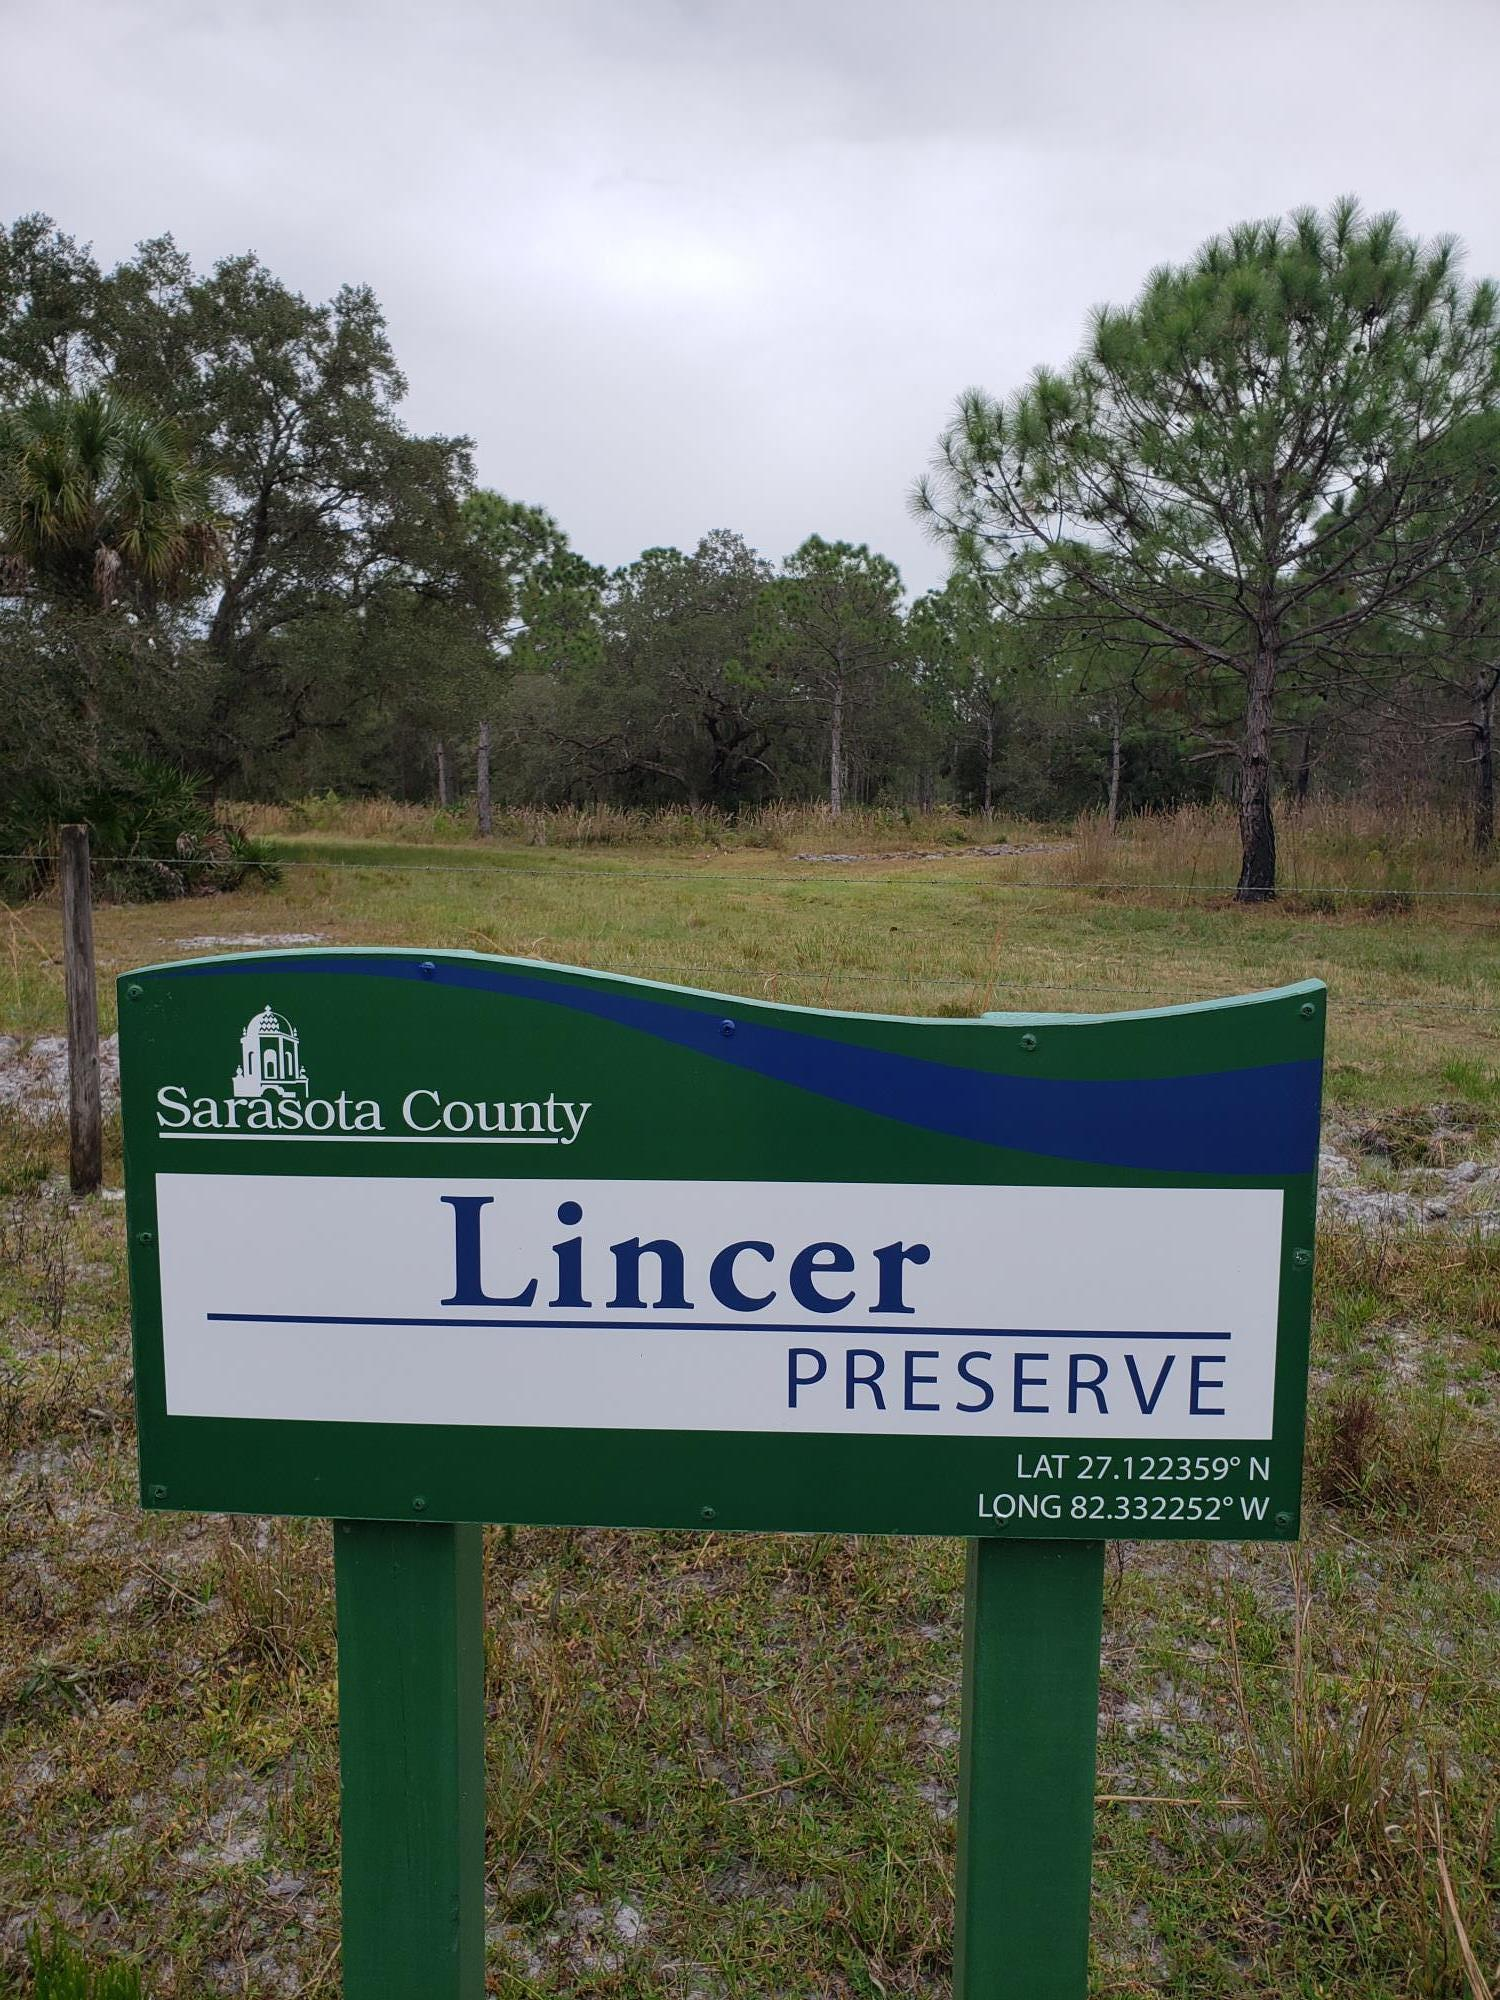 Lincer Preserve entrance sign